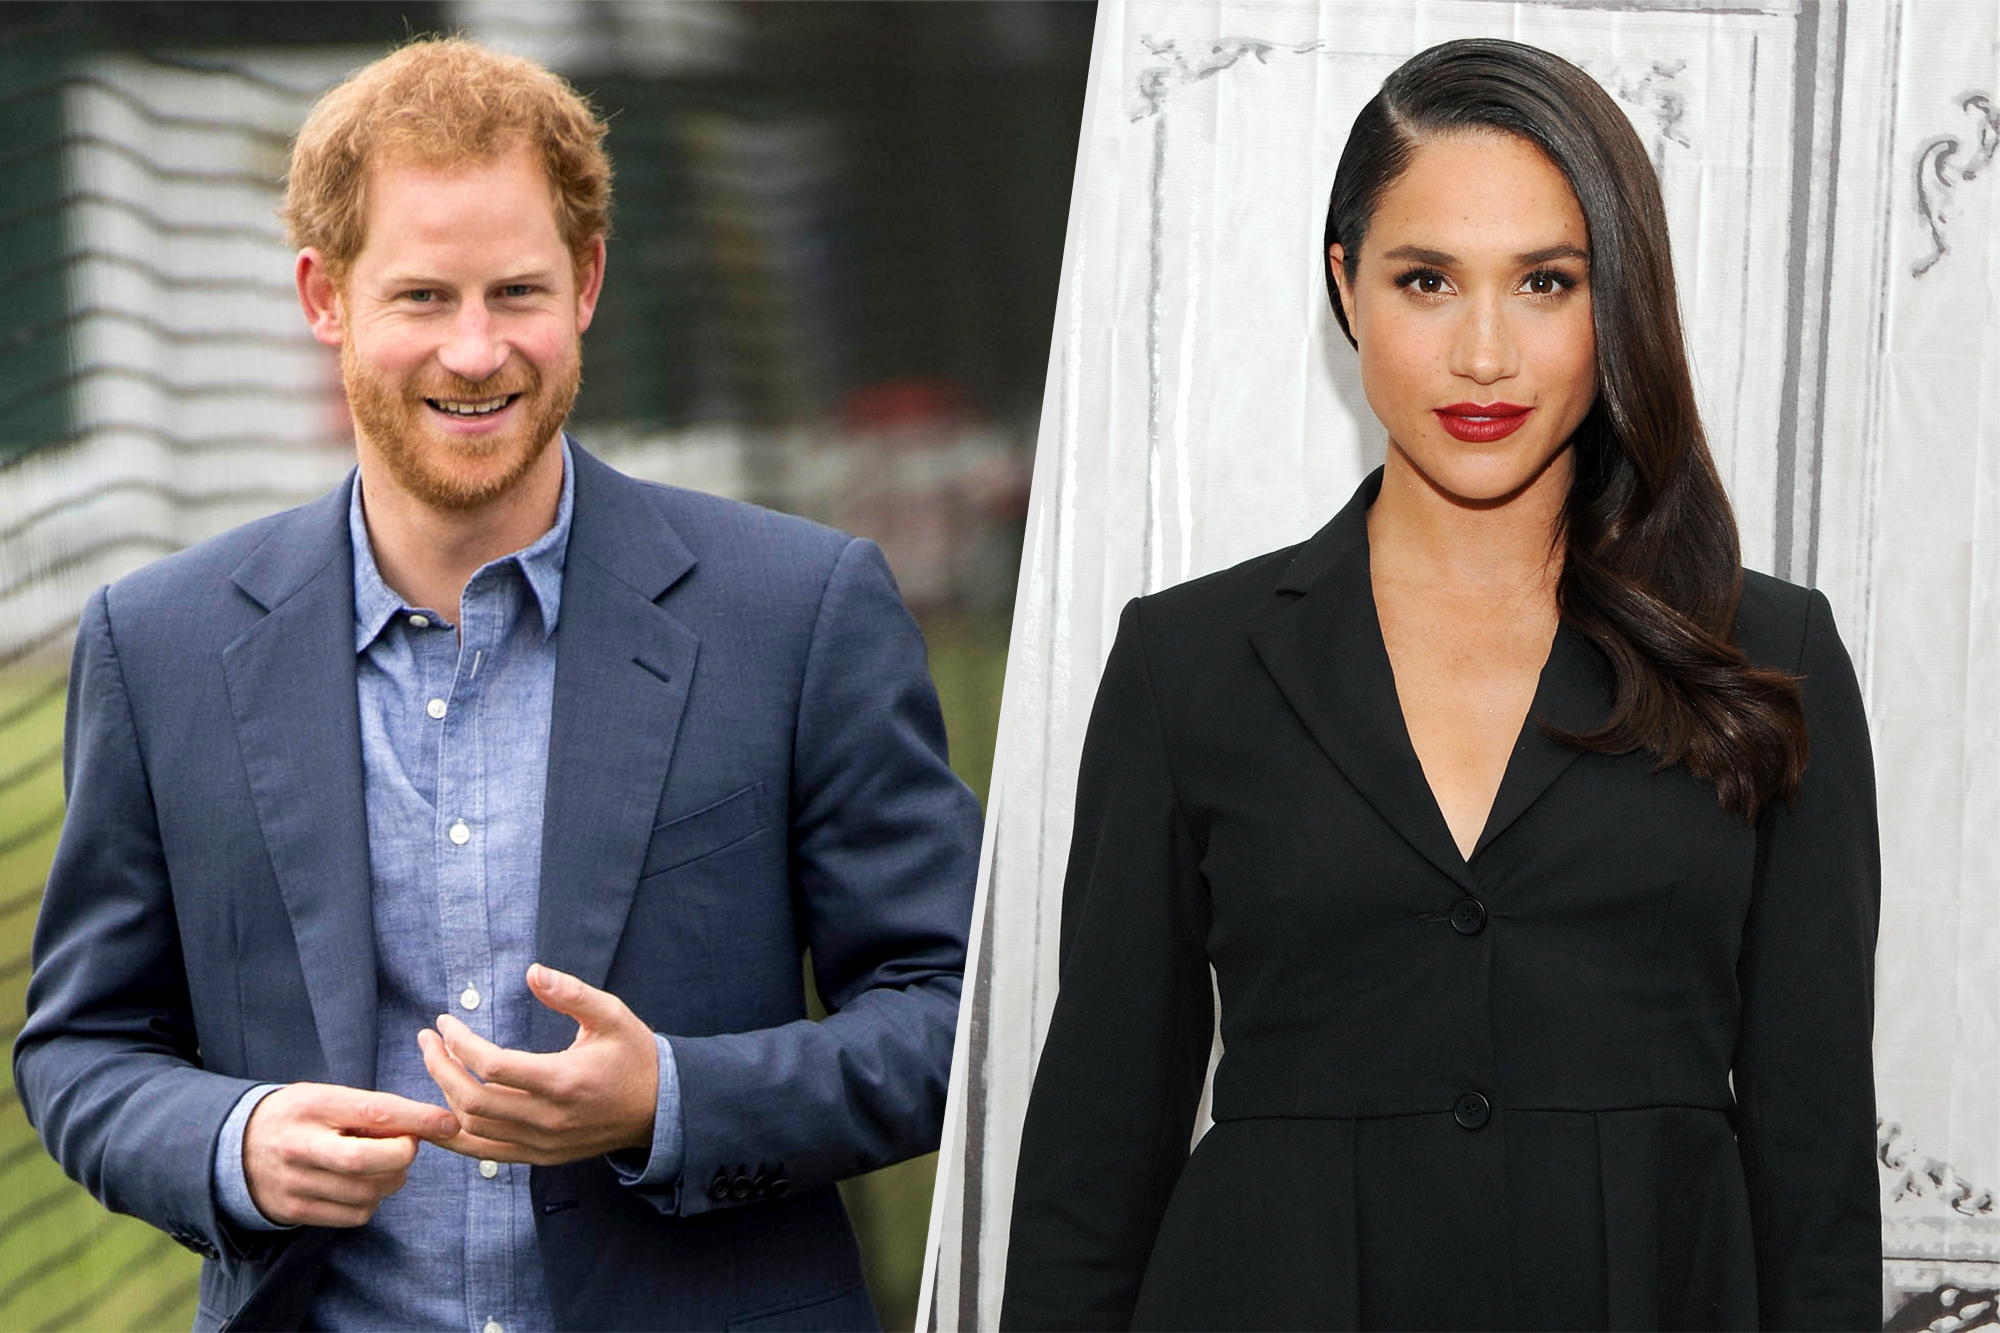 Prince Harry's Love For Girlfriend Meghan Markle Made Him Open Up About His Mental Health, Cute!